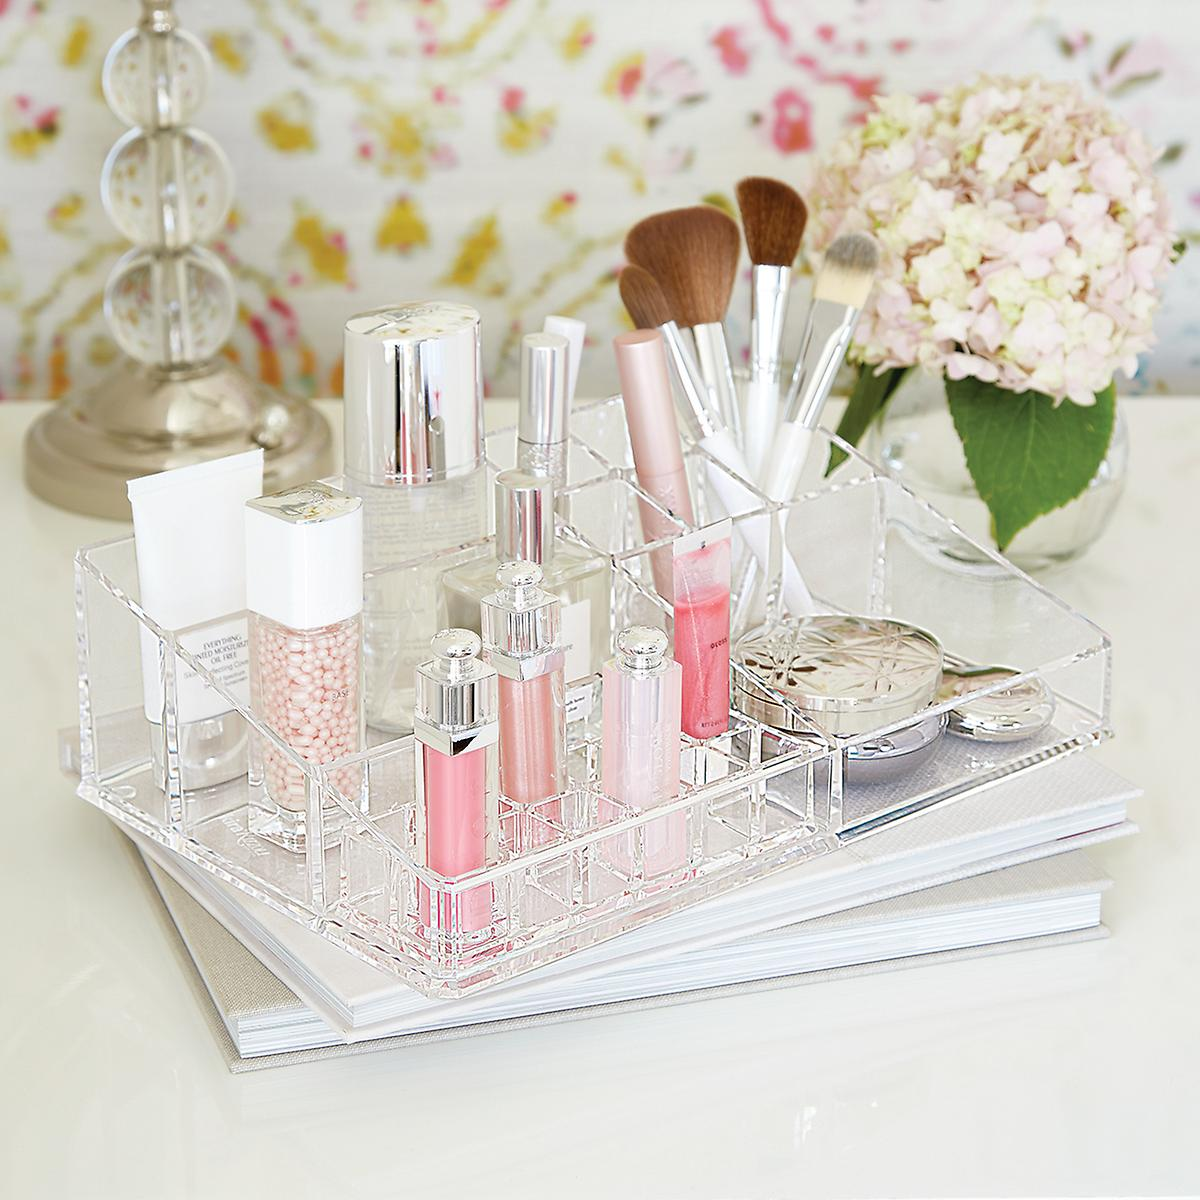 Design Makeup Organization acrylic makeup organizer large the organizer